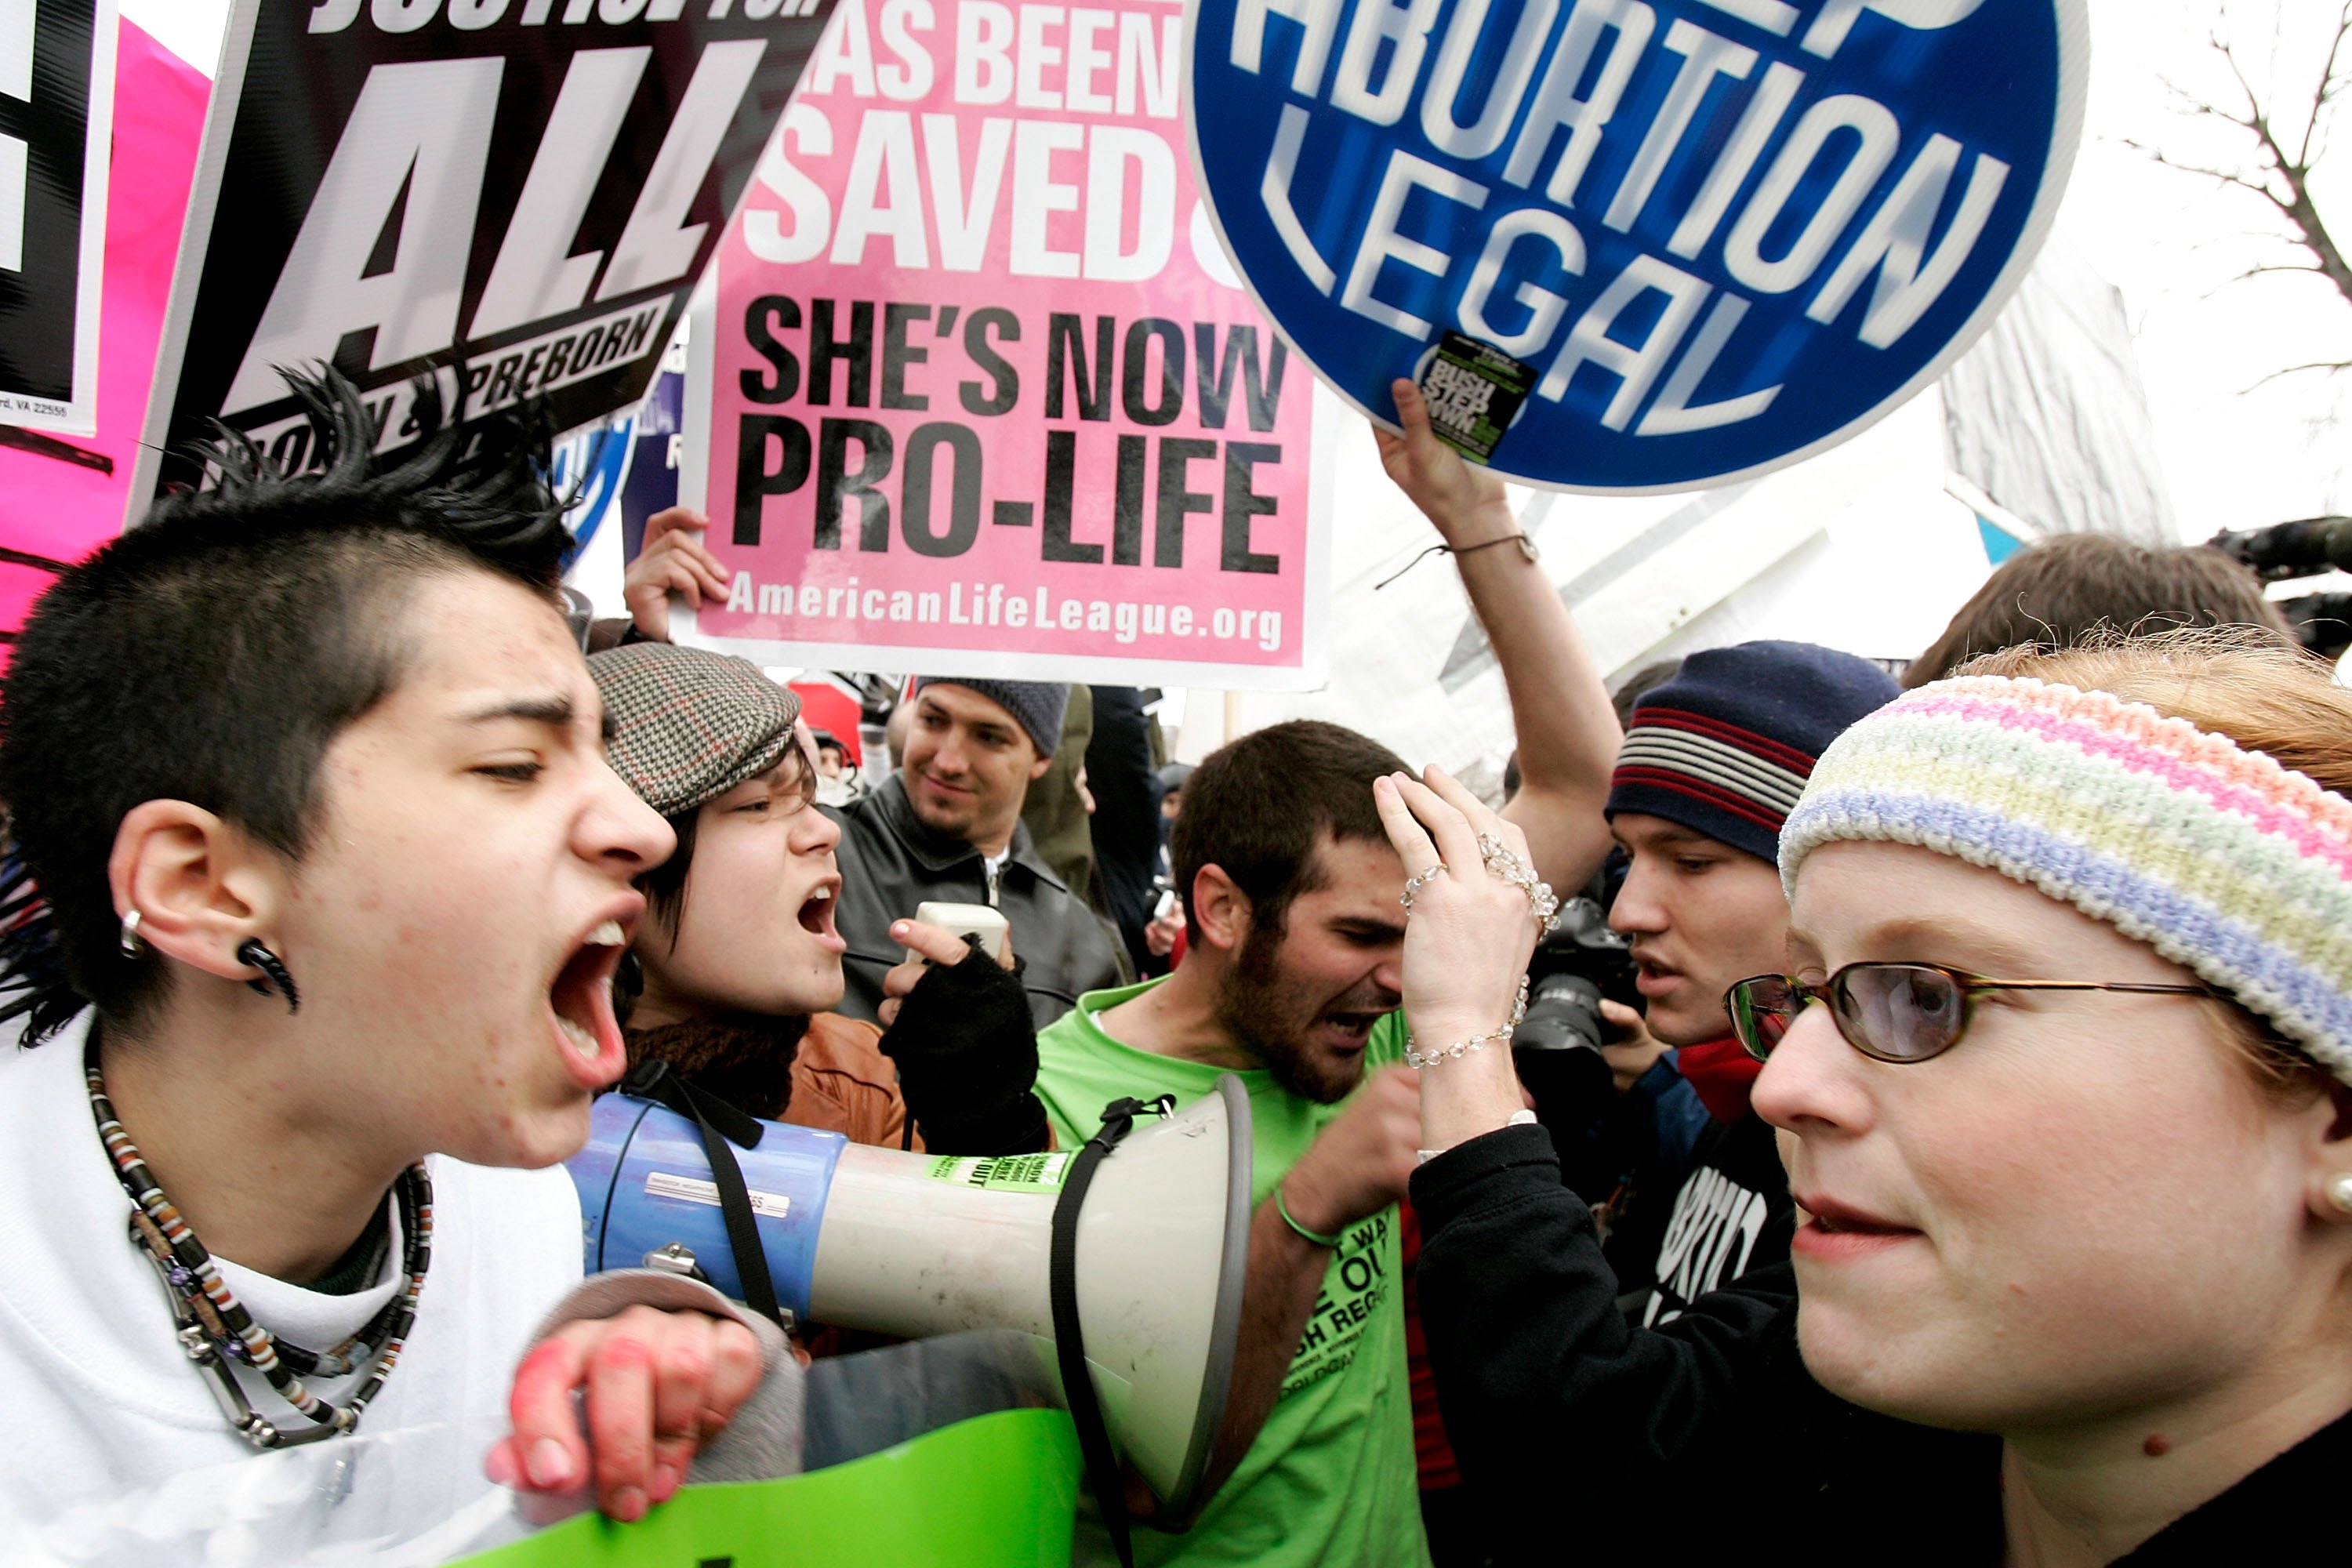 WASHINGTON - JANUARY 23: Pro-choice activists (L) argue with Pro-life activists (R) on abortion issues in front of the U.S. Supreme Court January 23, 2006 in Washington, DC. Thousands of people took part in the annual ?March for Life? event to mark the 33rd anniversary of the Roe v. Wade ruling that legalized abortion. (Photo by Alex Wong/Getty Images)